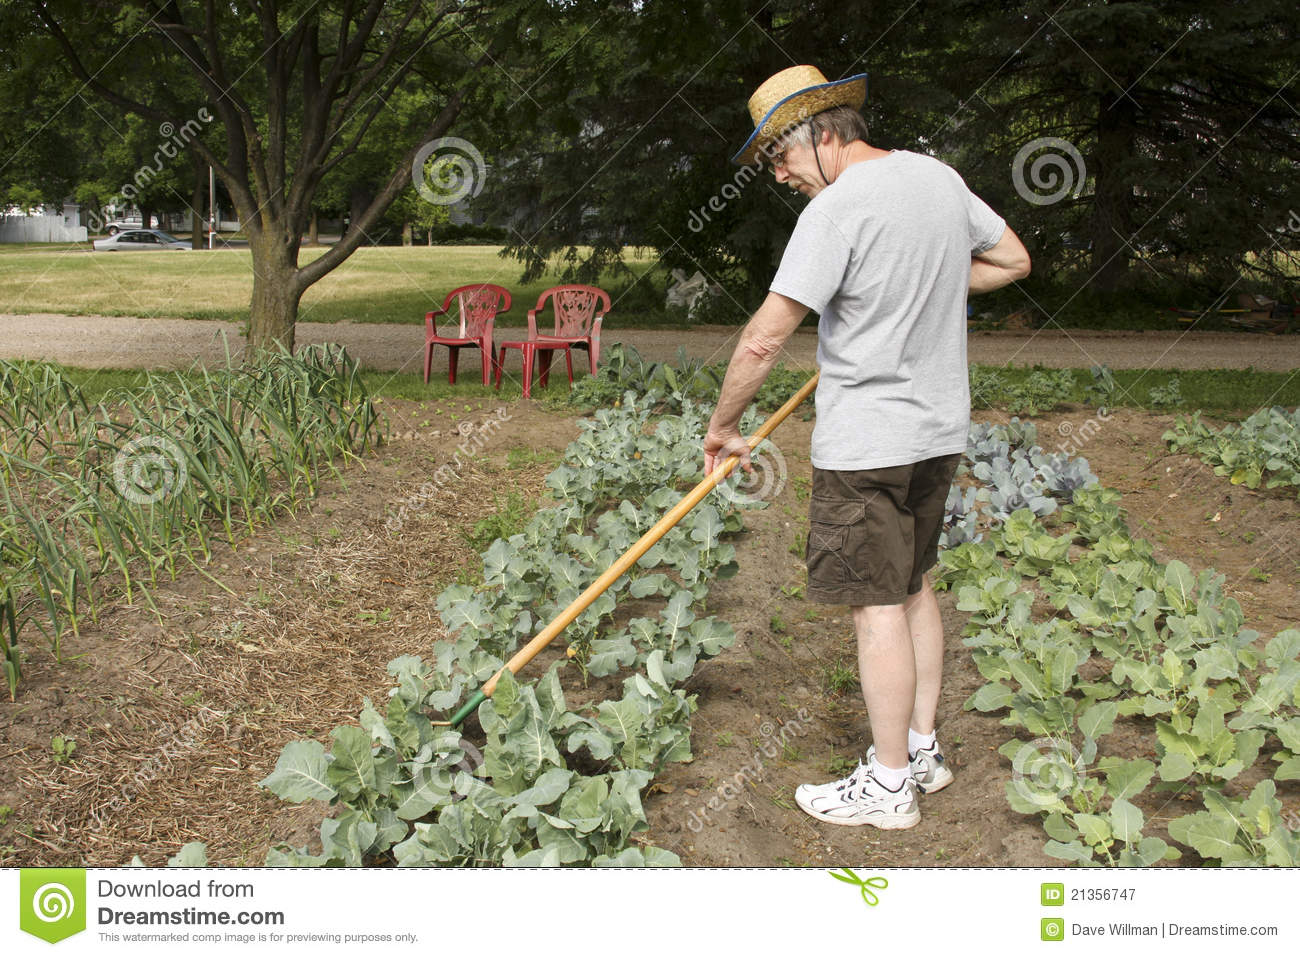 Tending the garden royalty free stock photography image 21356747 for Tending to the garden